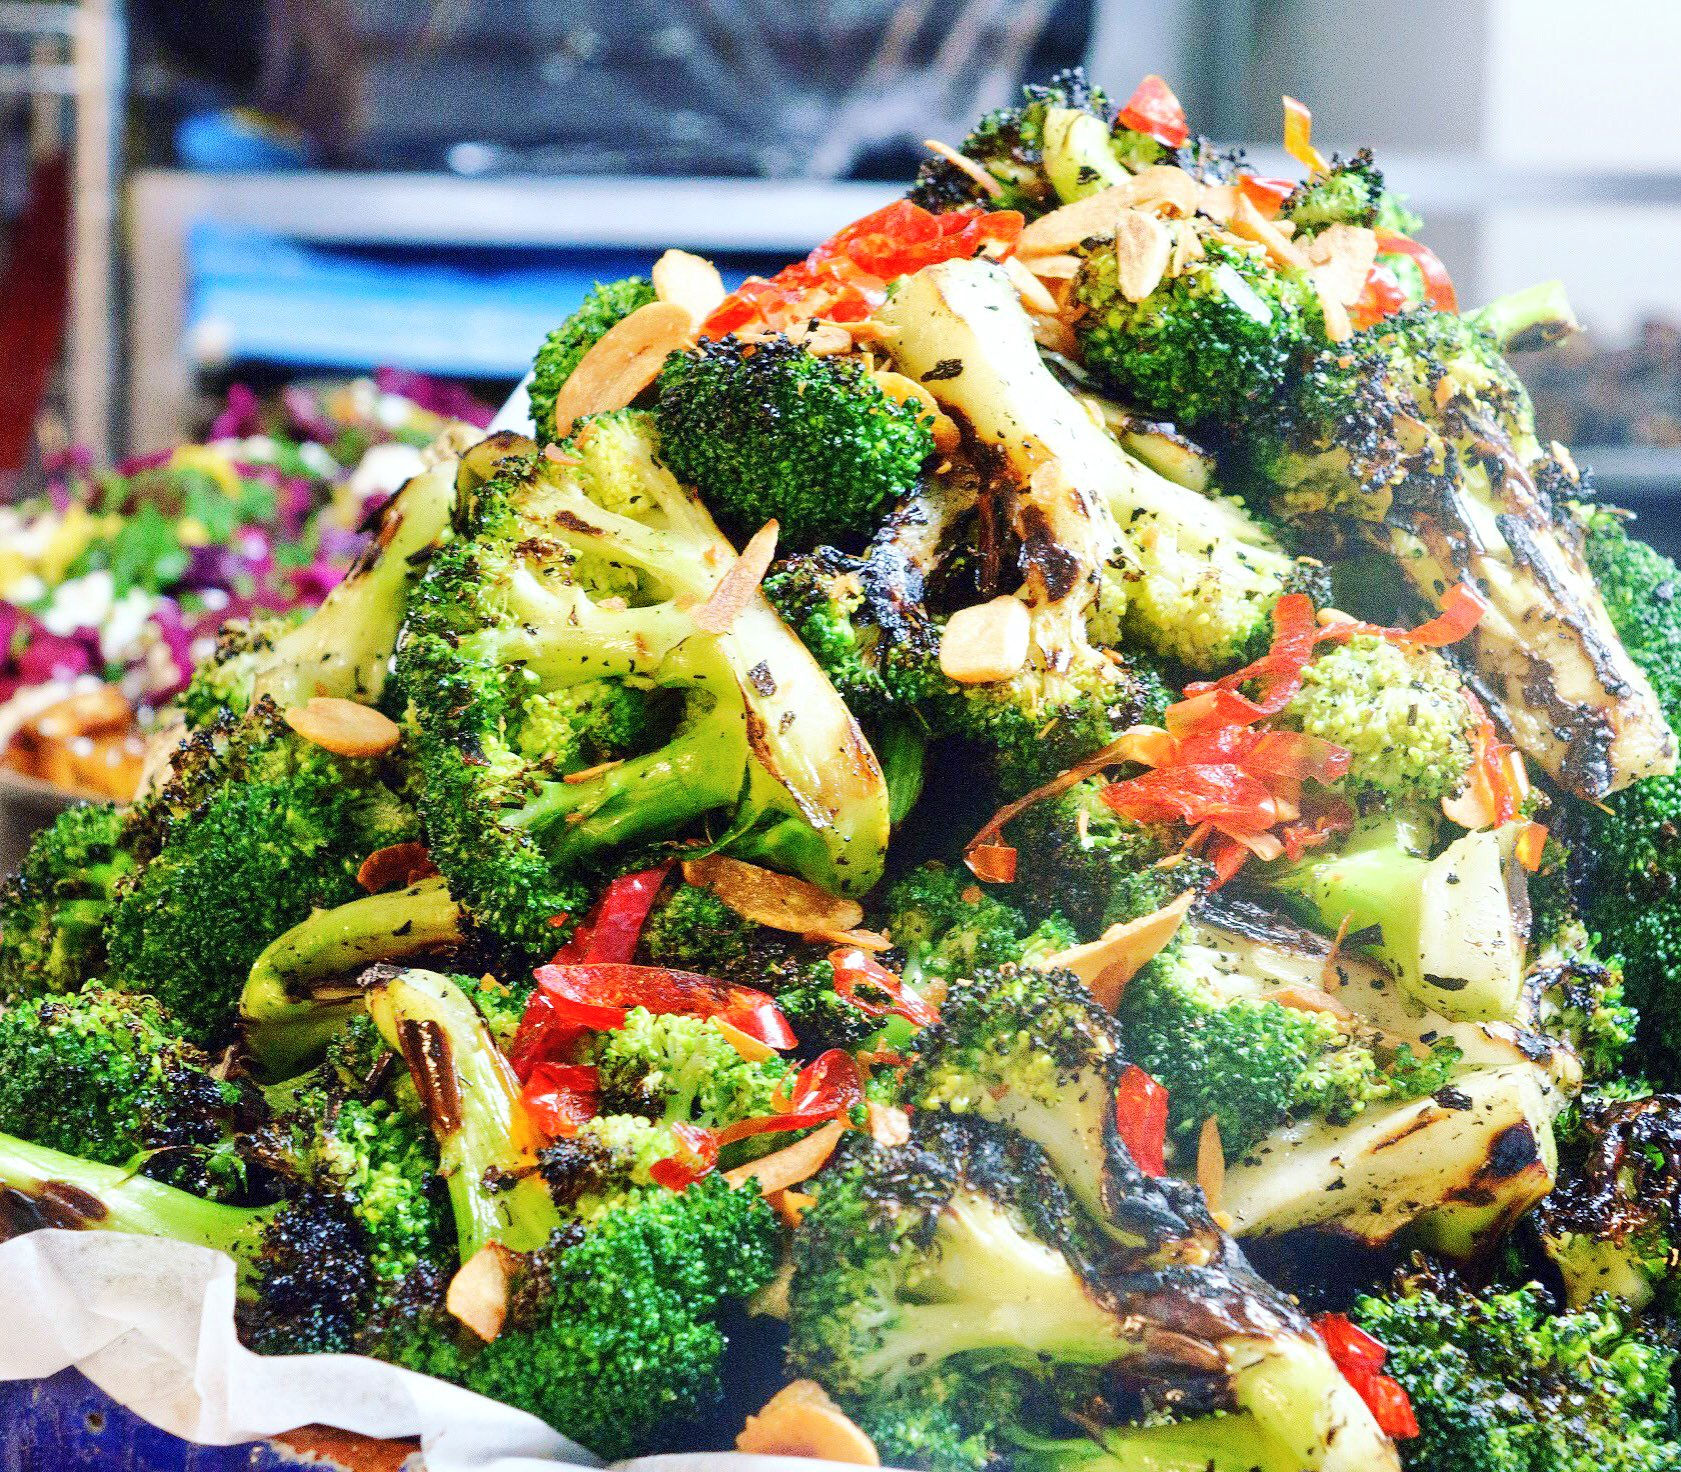 Ottolenghi On Twitter Chat Grilled Broccoli With Chilli And Garlic The One Dish That Never Left The Ottolenghi Menu 15 Years Broccoli